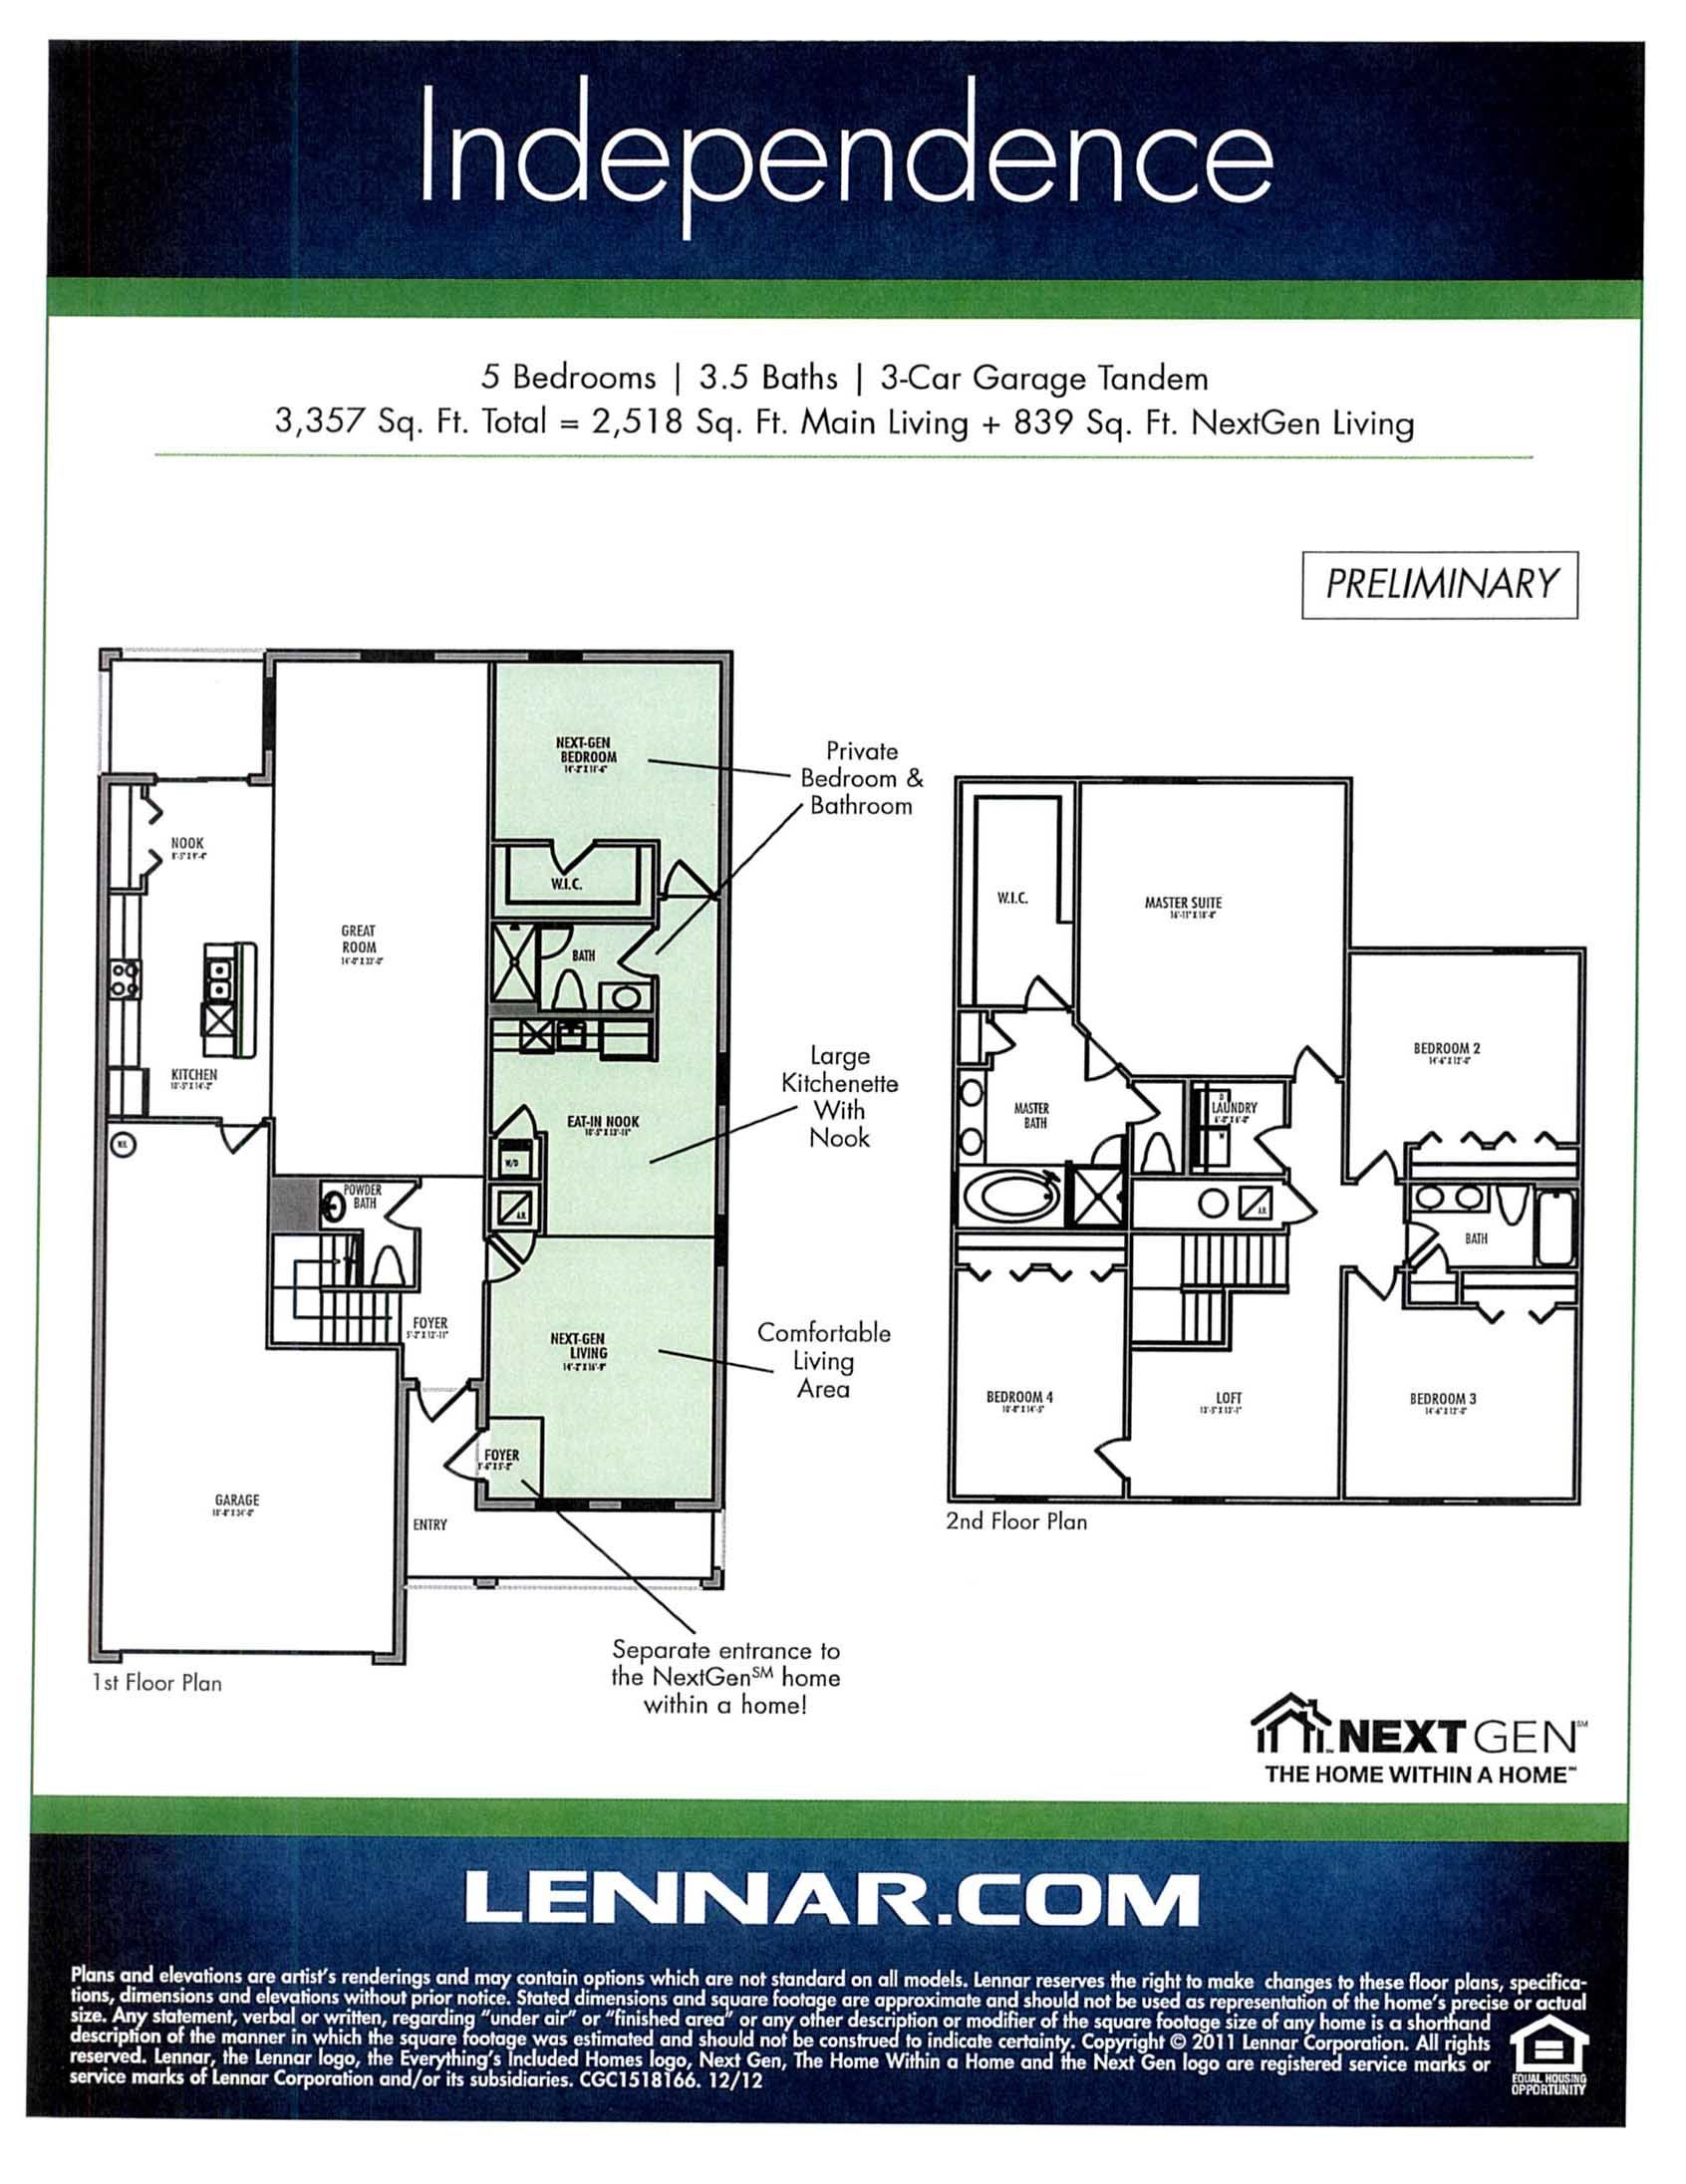 Lennar homes Independence Floorplan Next Gen...Home within a home ...